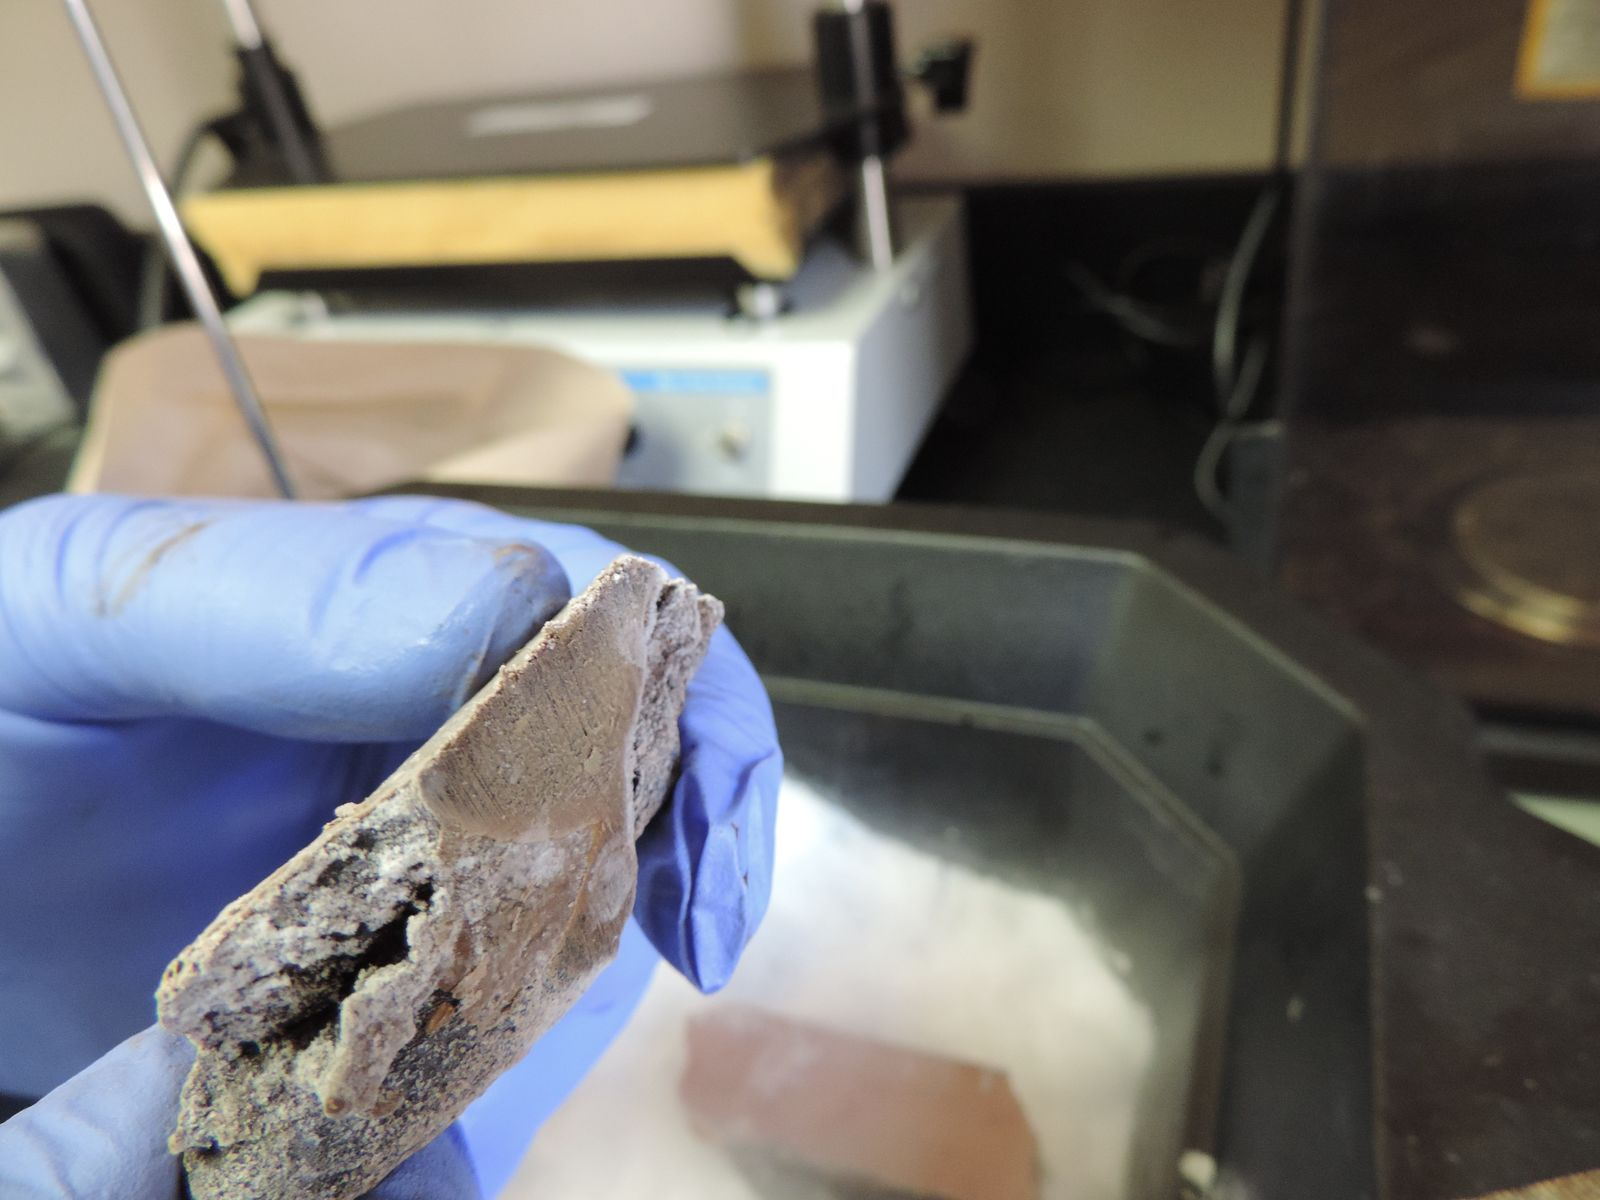 A cultural account of an Inuit man crafting a knife out of his own frozen feces was tested for scientific accuracy in a recent experiment. (Photo Courtesy of{ }Experimental replication shows knives manufactured from frozen human feces do not work)